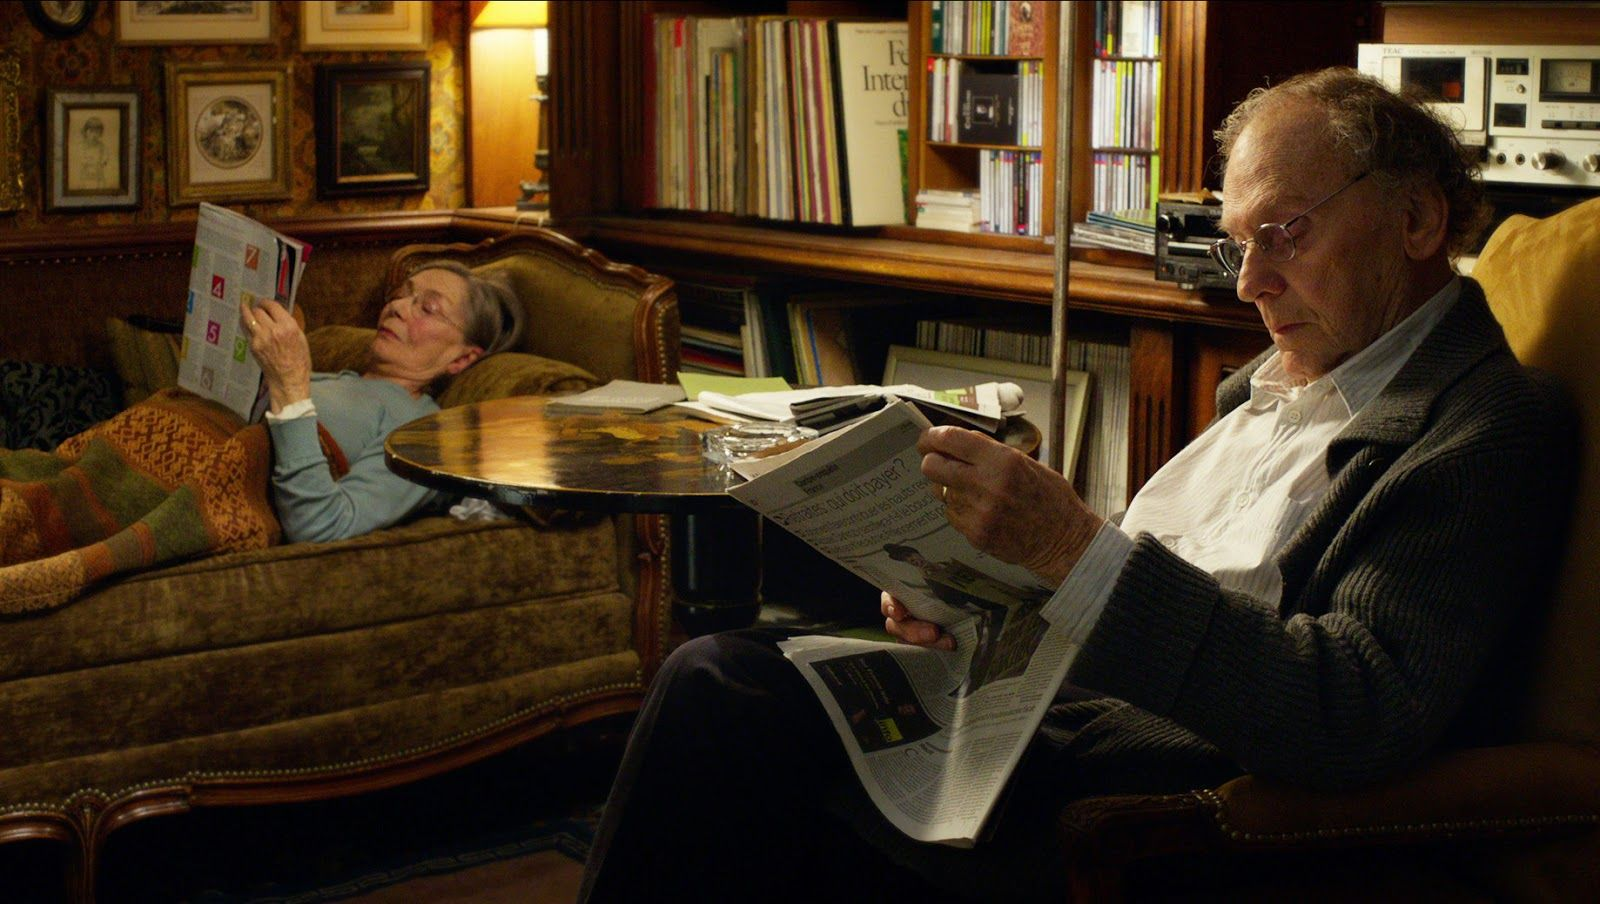 Michael Haneke's Amour | O film, Movie blog, Film